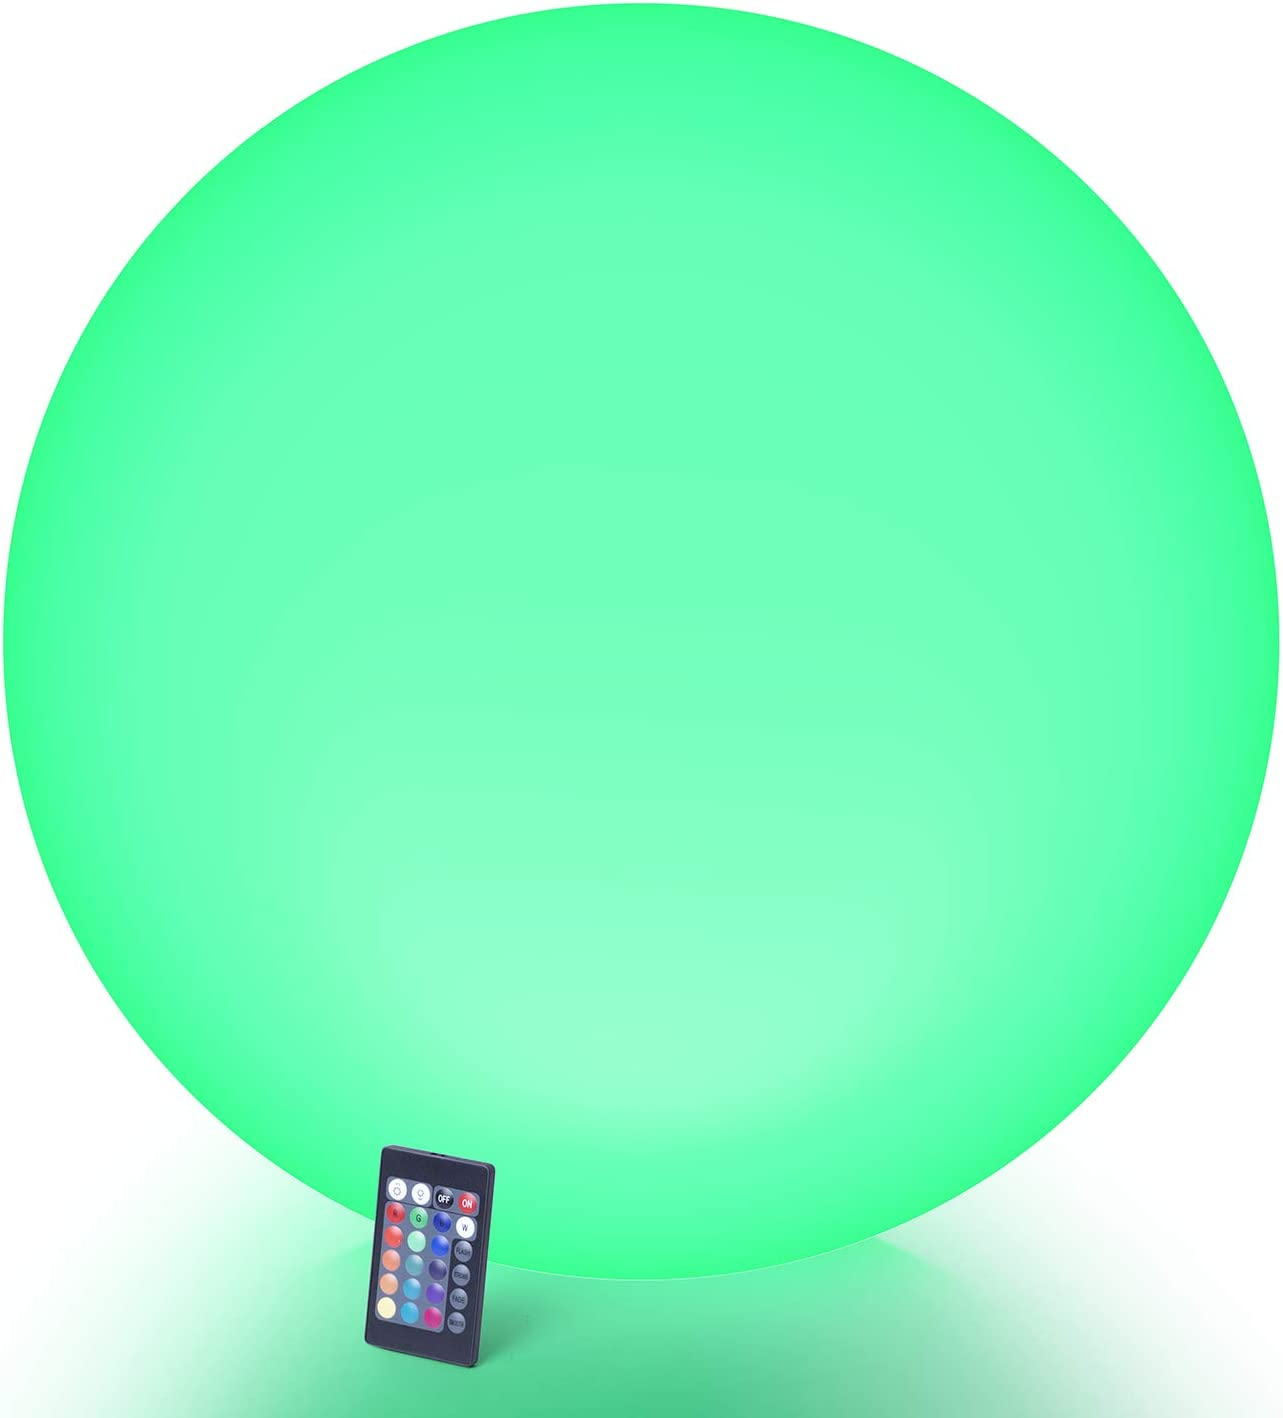 LOFTEK Large LED Nursery Night Light Ball, 24-inch Rechargeable Waterproof Floating Pool Lights with Remote, 16 RGB Colors & 5 Dimming Levels & 4 Lighting Modes Cordless Light Up Ball